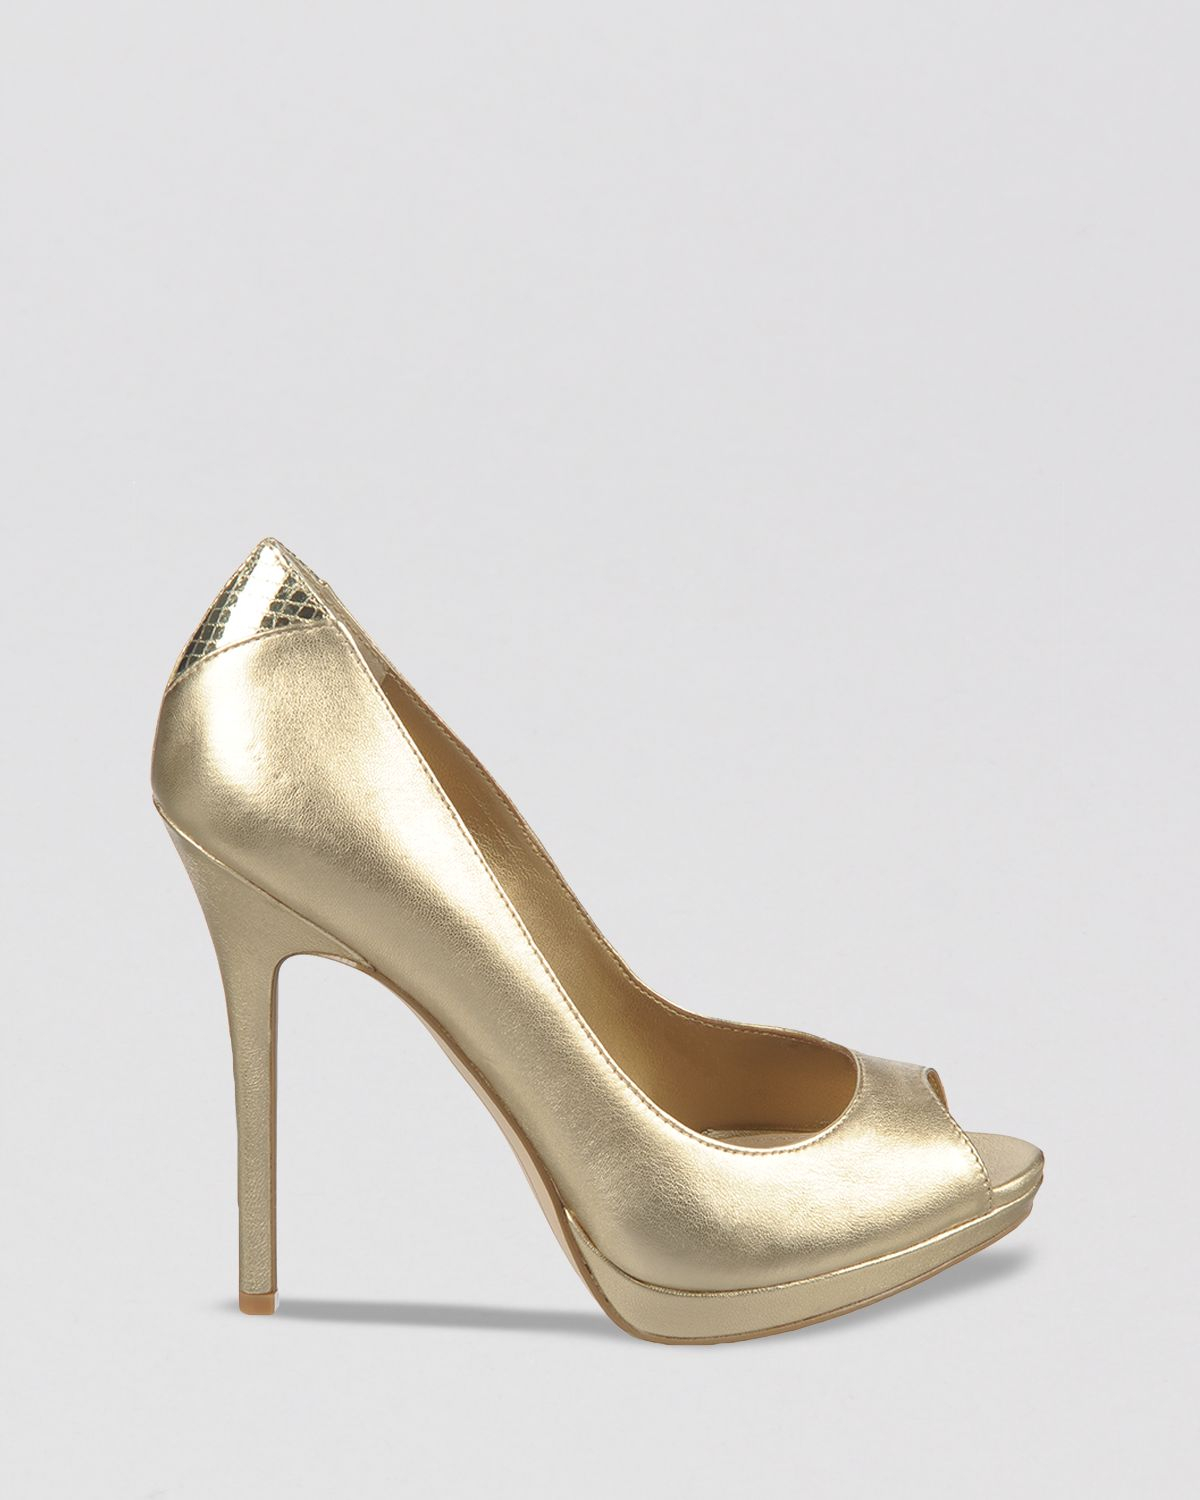 Sam edelman Peep Toe Platform Pumps Ella High Heel in Metallic  Lyst